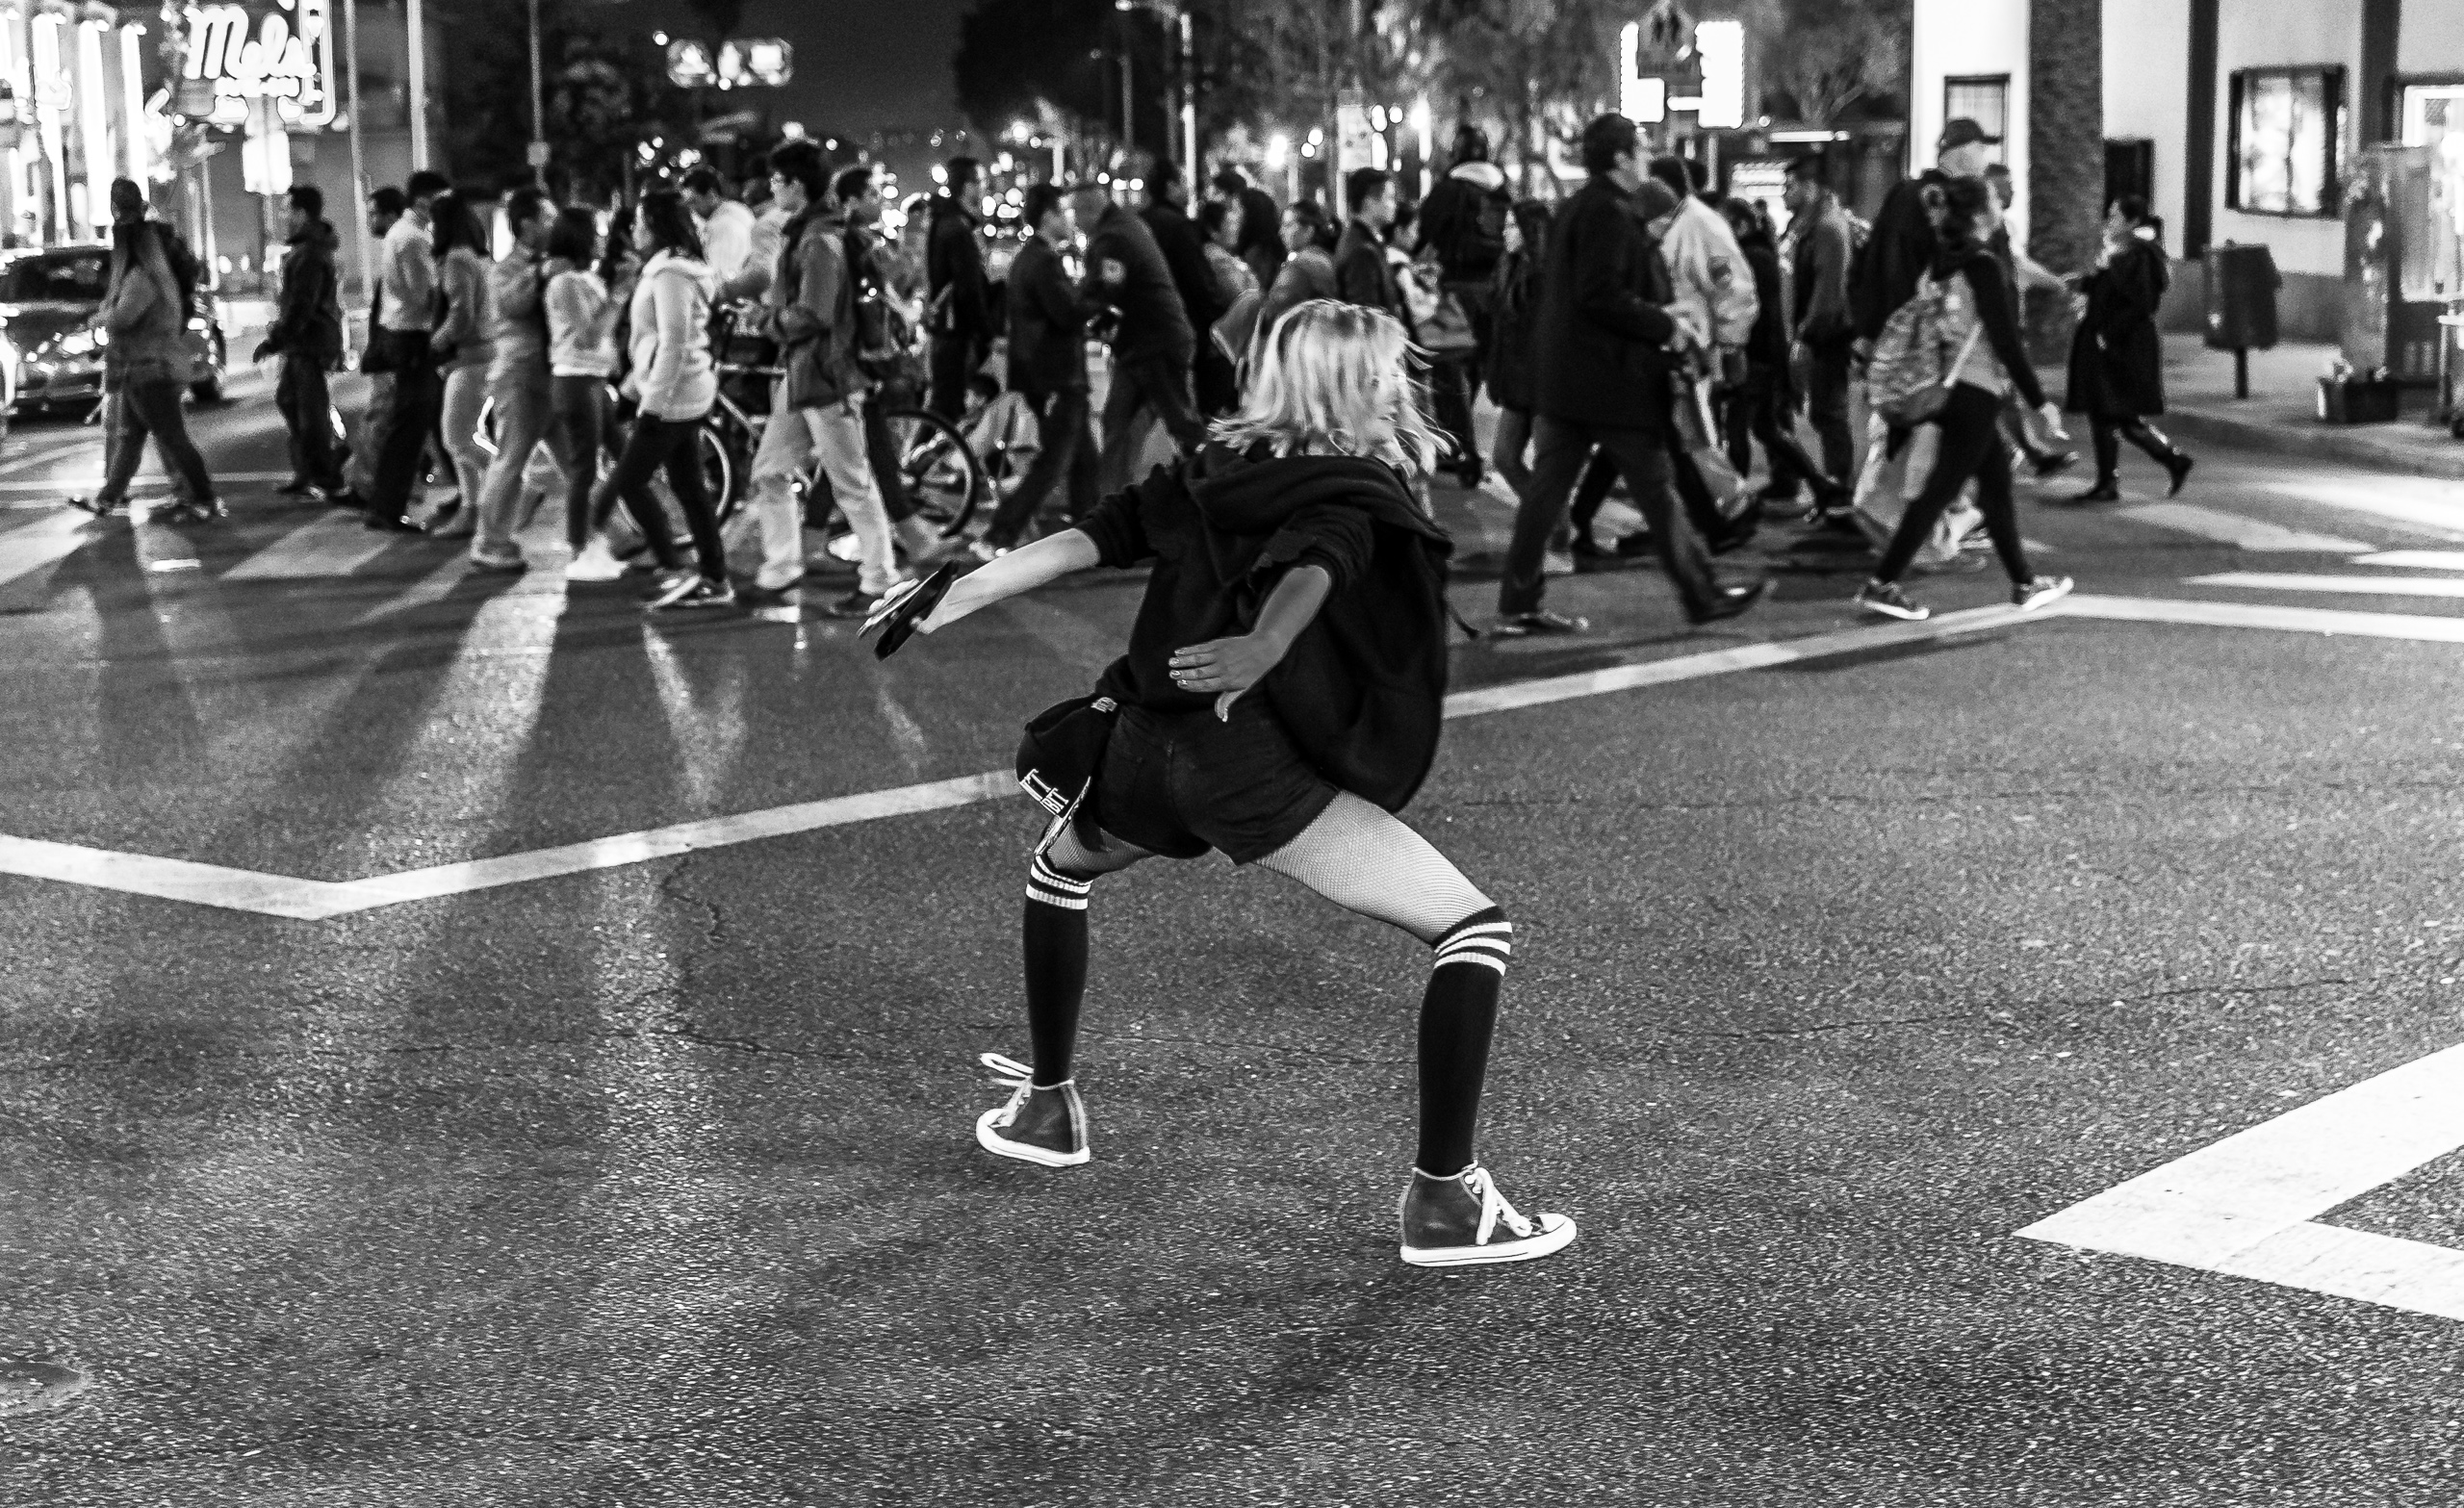 a woman doing a freestyle dance across the four-way crossing at Hollywood Blvd & Highland Blvd in Hollywood, Los Angeles, California